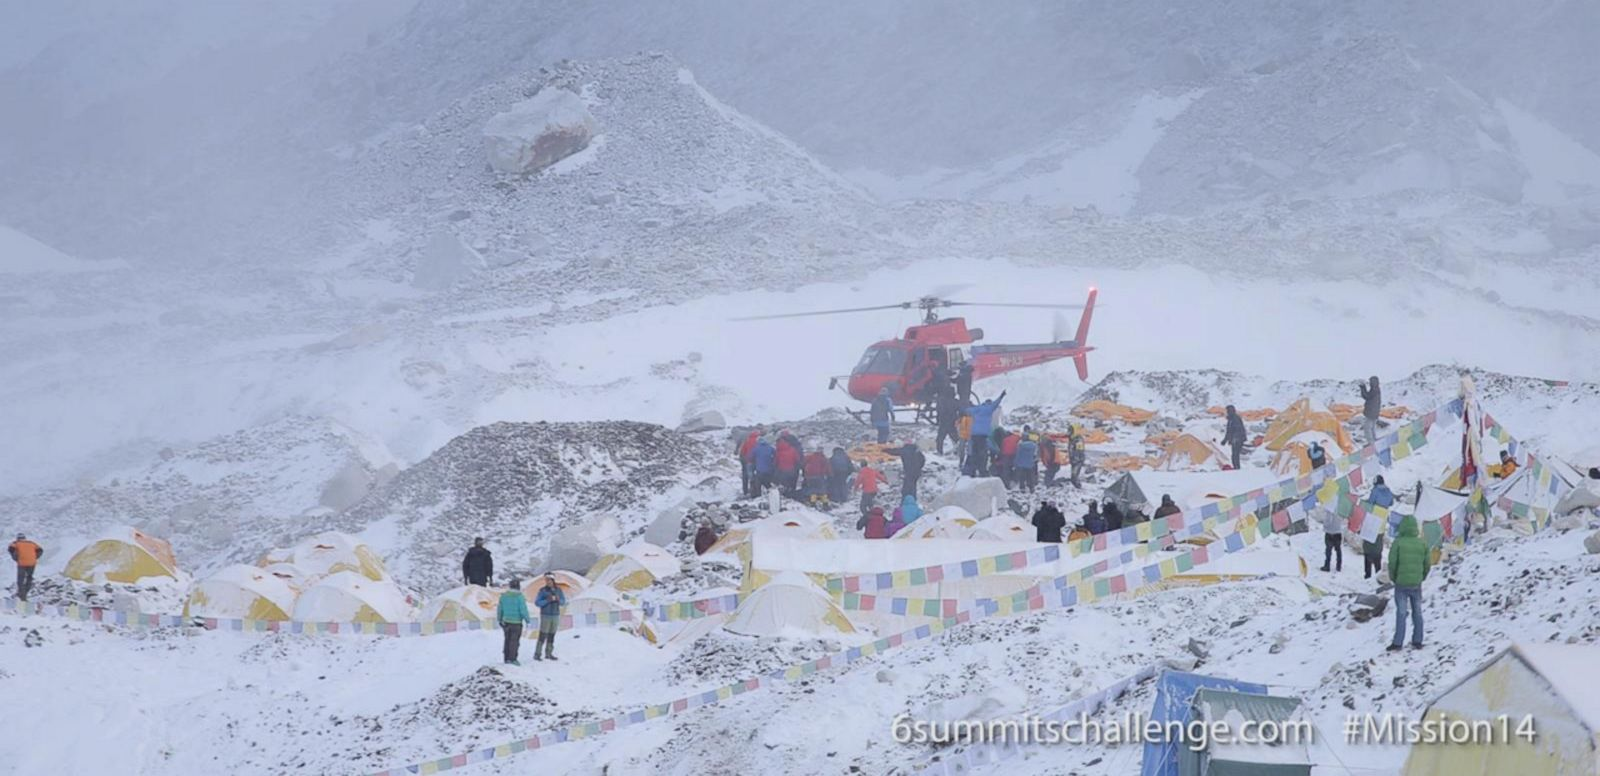 VIDEO: Climbers, Rescue Workers Aid the Injured After Mt. Everest Avalanche